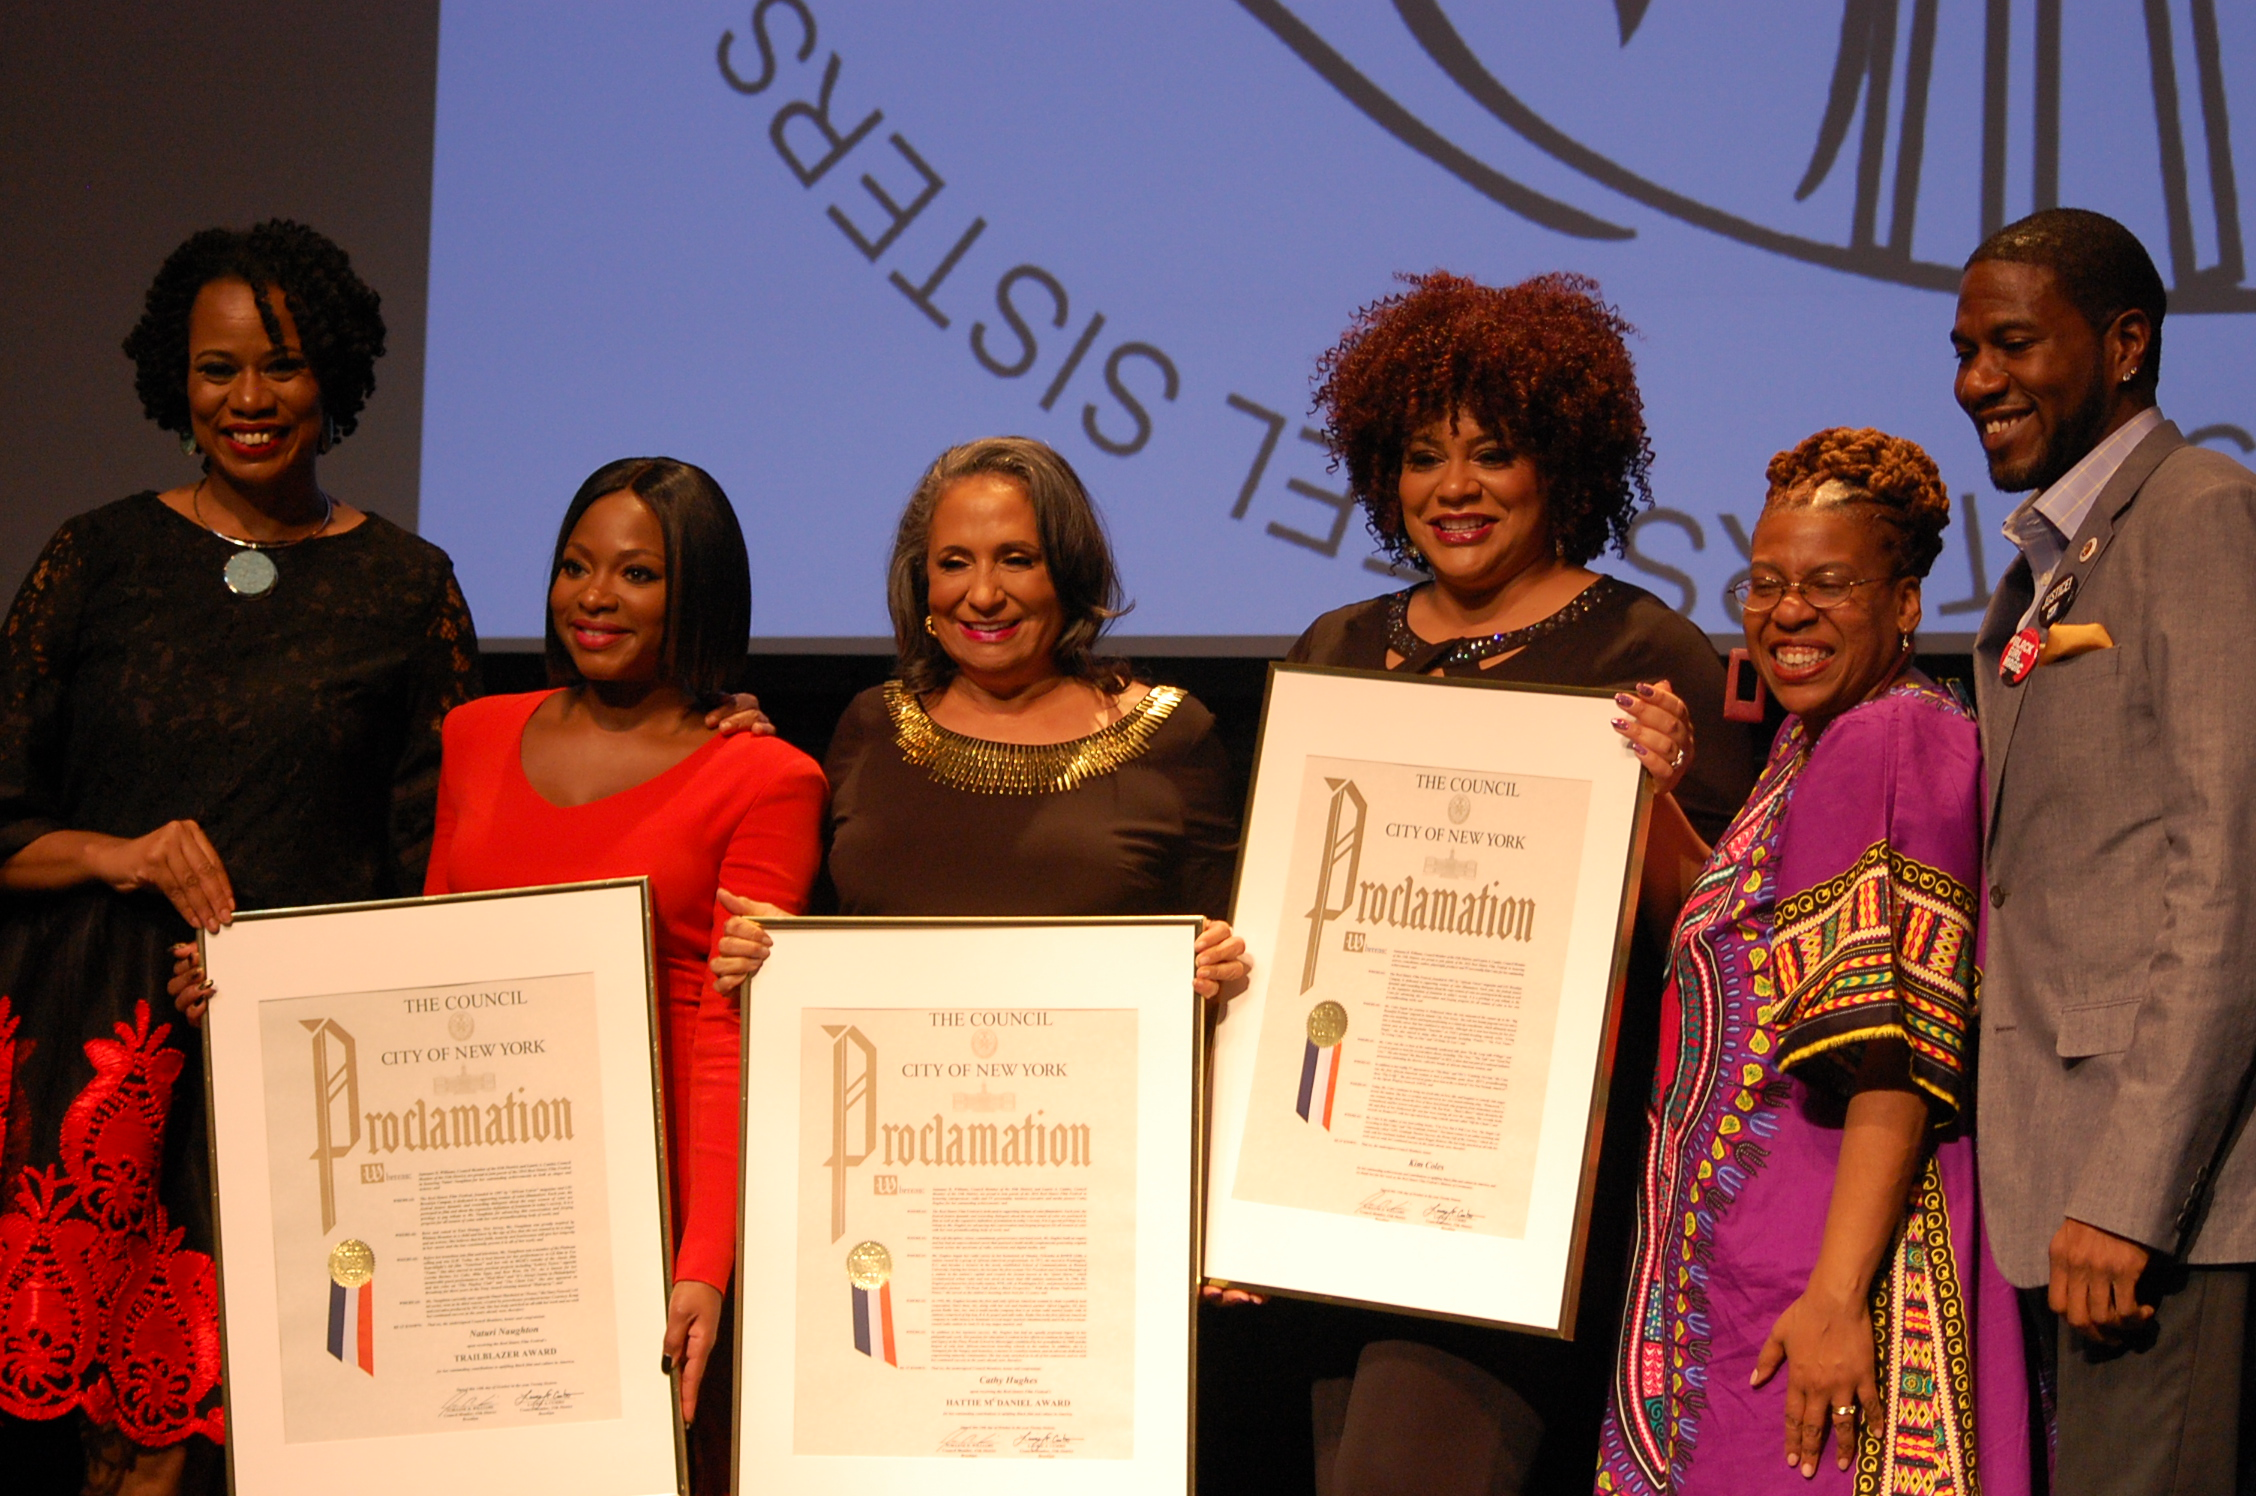 Reel Sisters Kicks Off Film Fest in Harlem with Awards Ceremony And Brings 40 Films by Women of Color From Across the Globe to Brooklyn